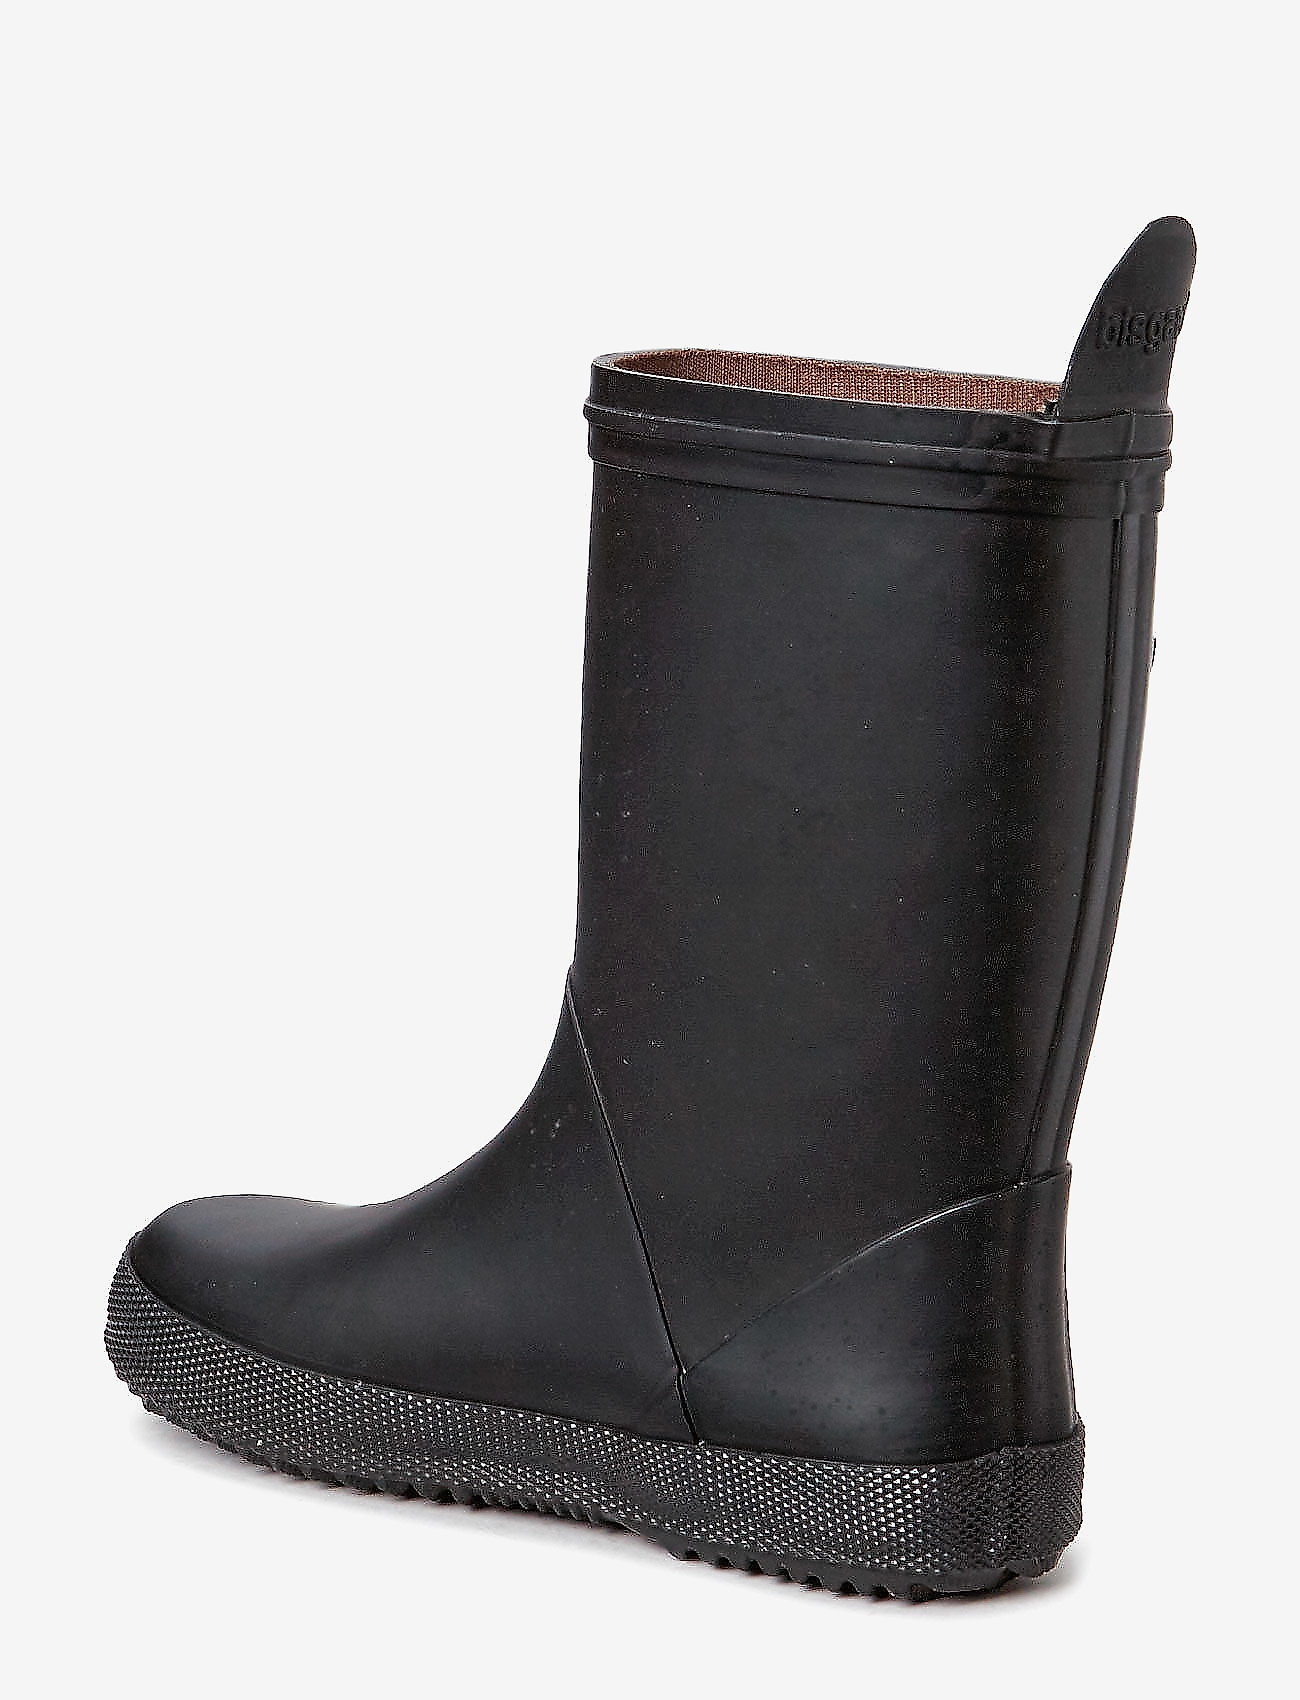 "Bisgaard - RUBBER BOOT ""SCANDINAVIA"" - kalosze - 50 black - 1"